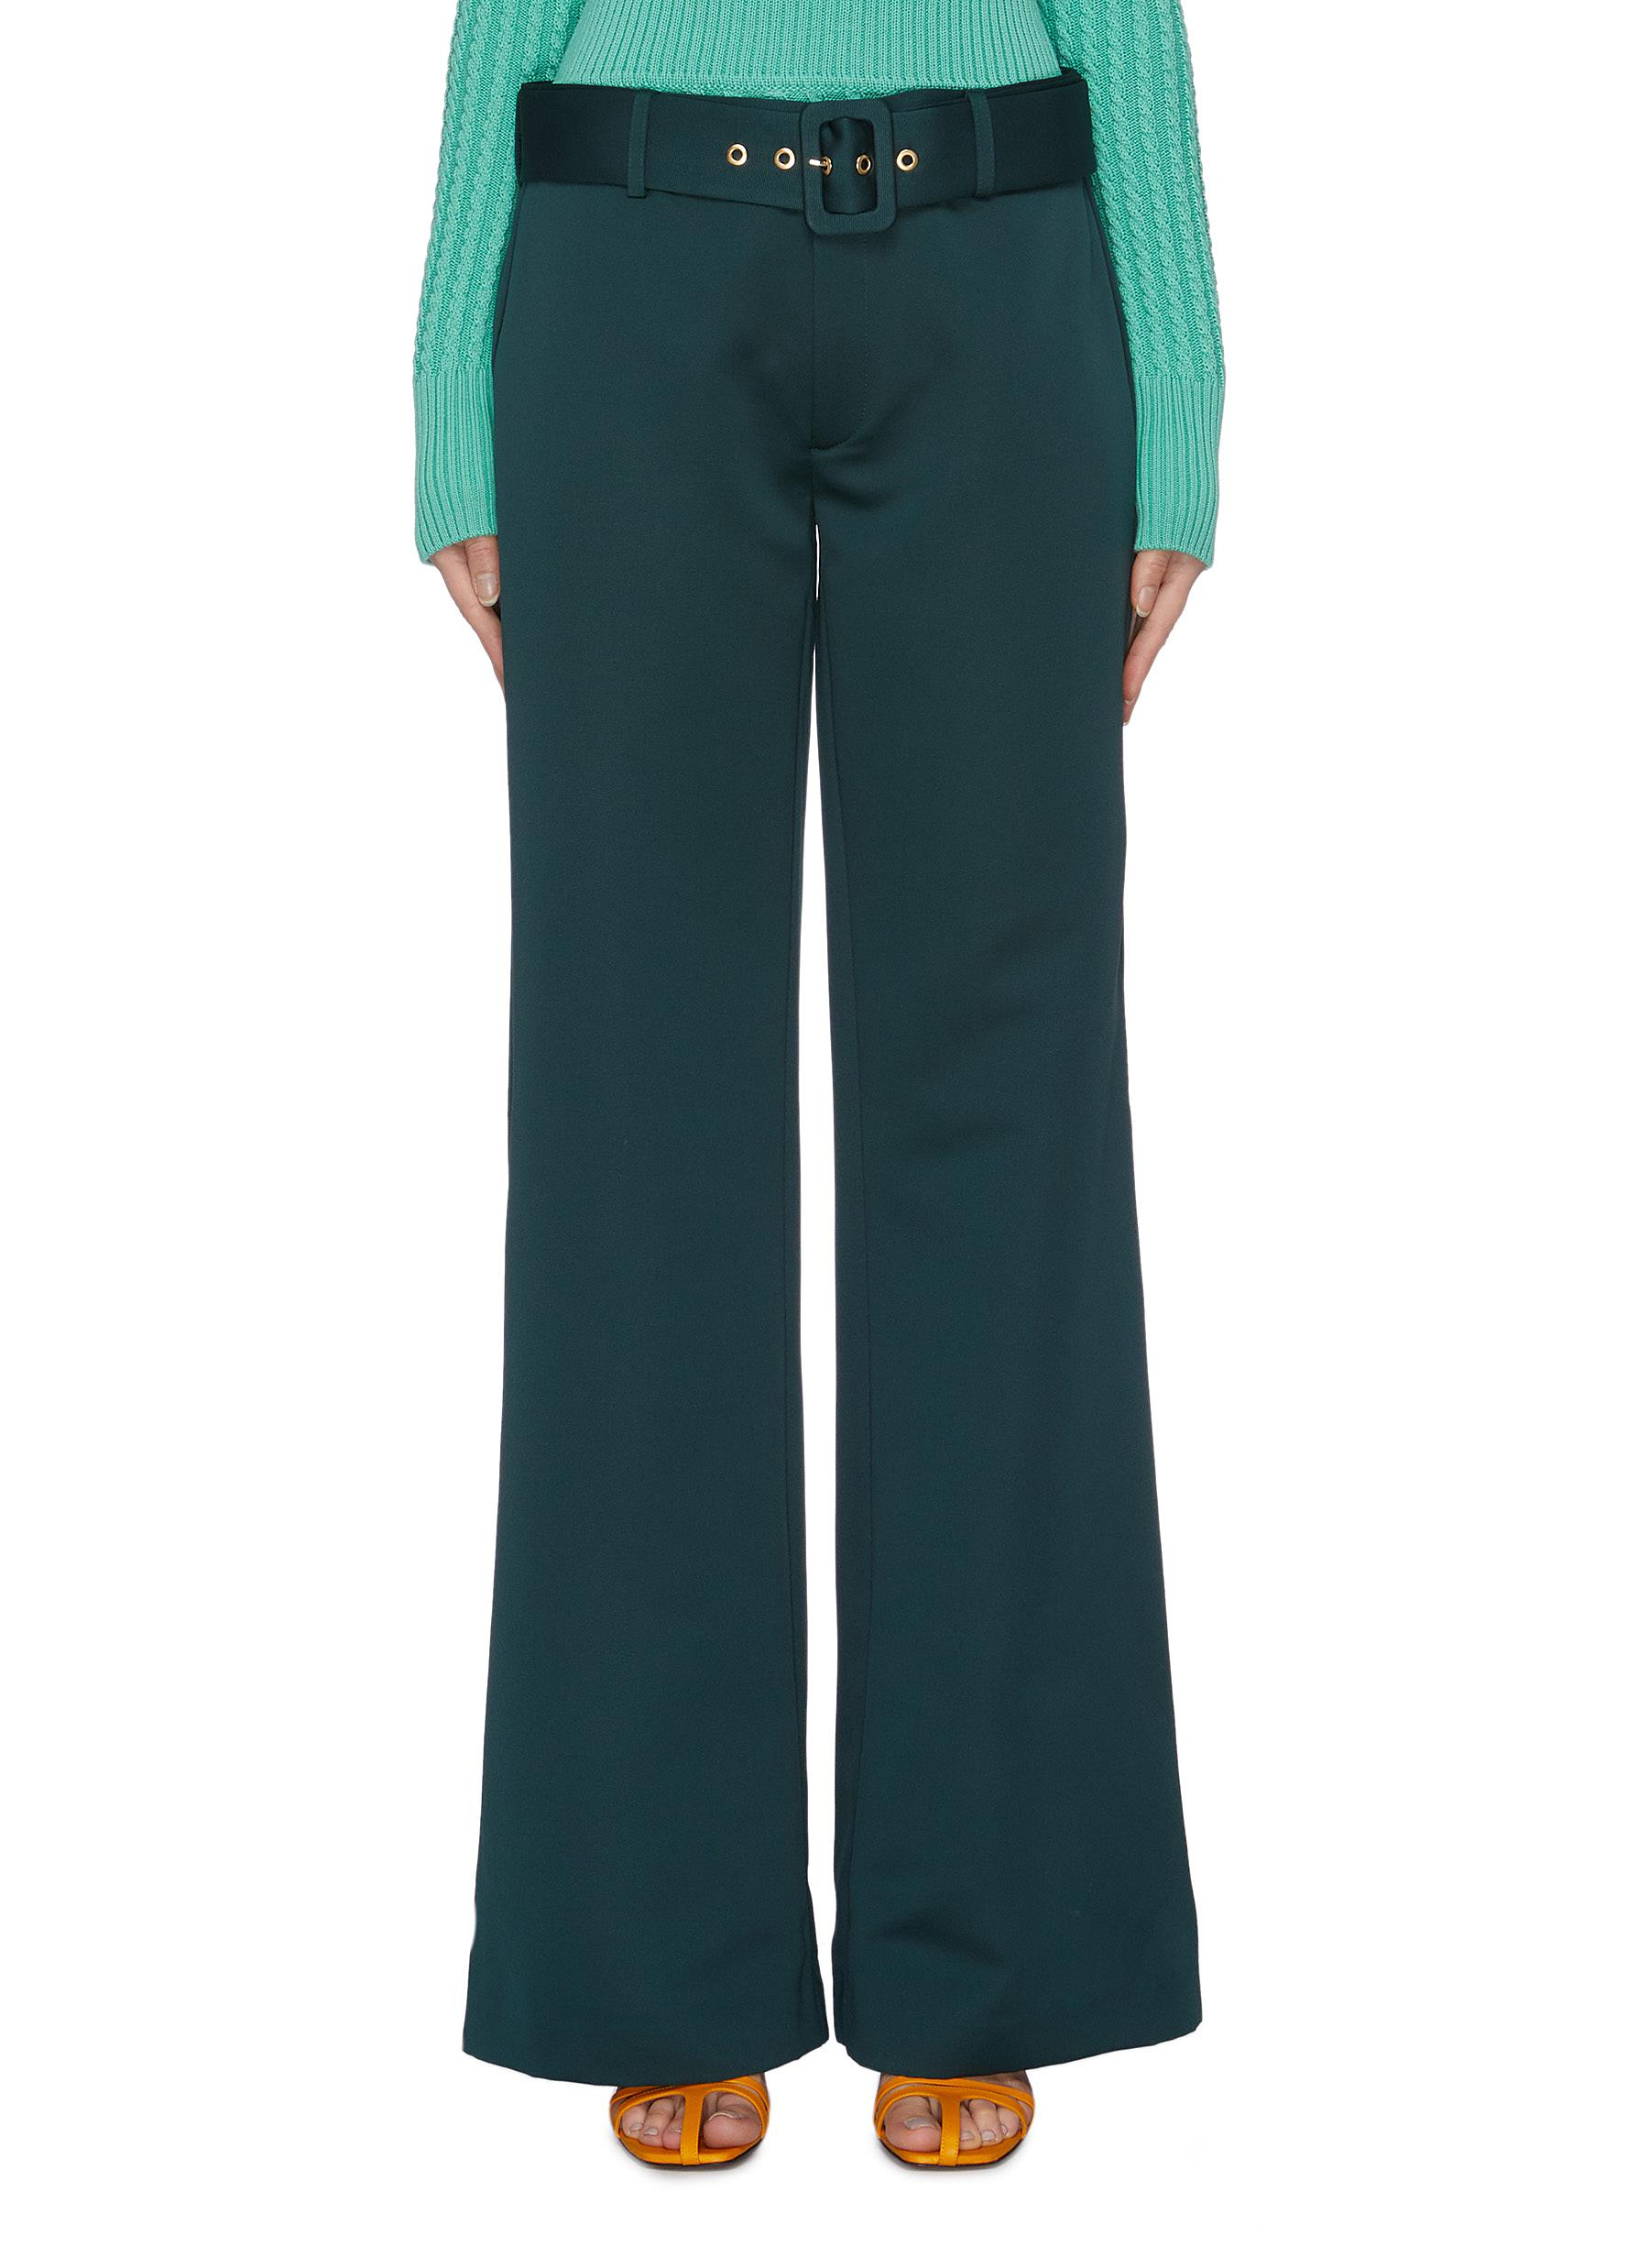 Nothing Stopping Me belted wide leg pants by Maggie Marilyn